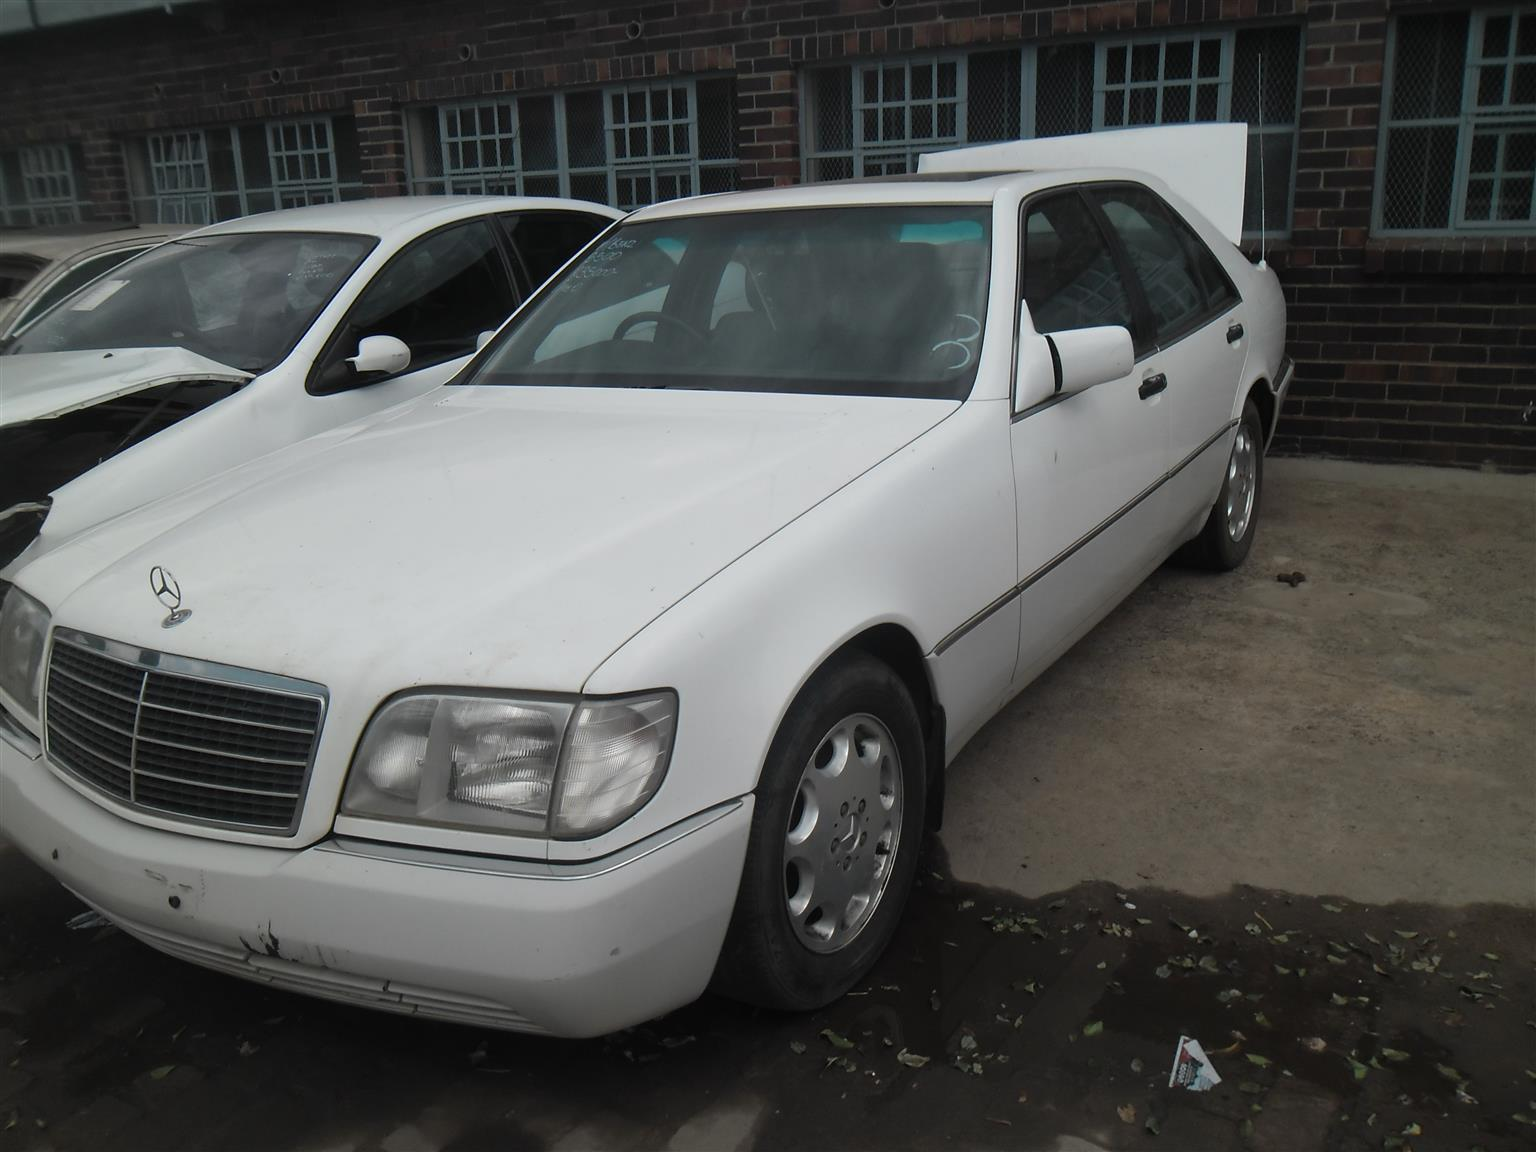 Mercedes benz s500 w140 stripping for spares gearbox for for Mercedes benz used body parts